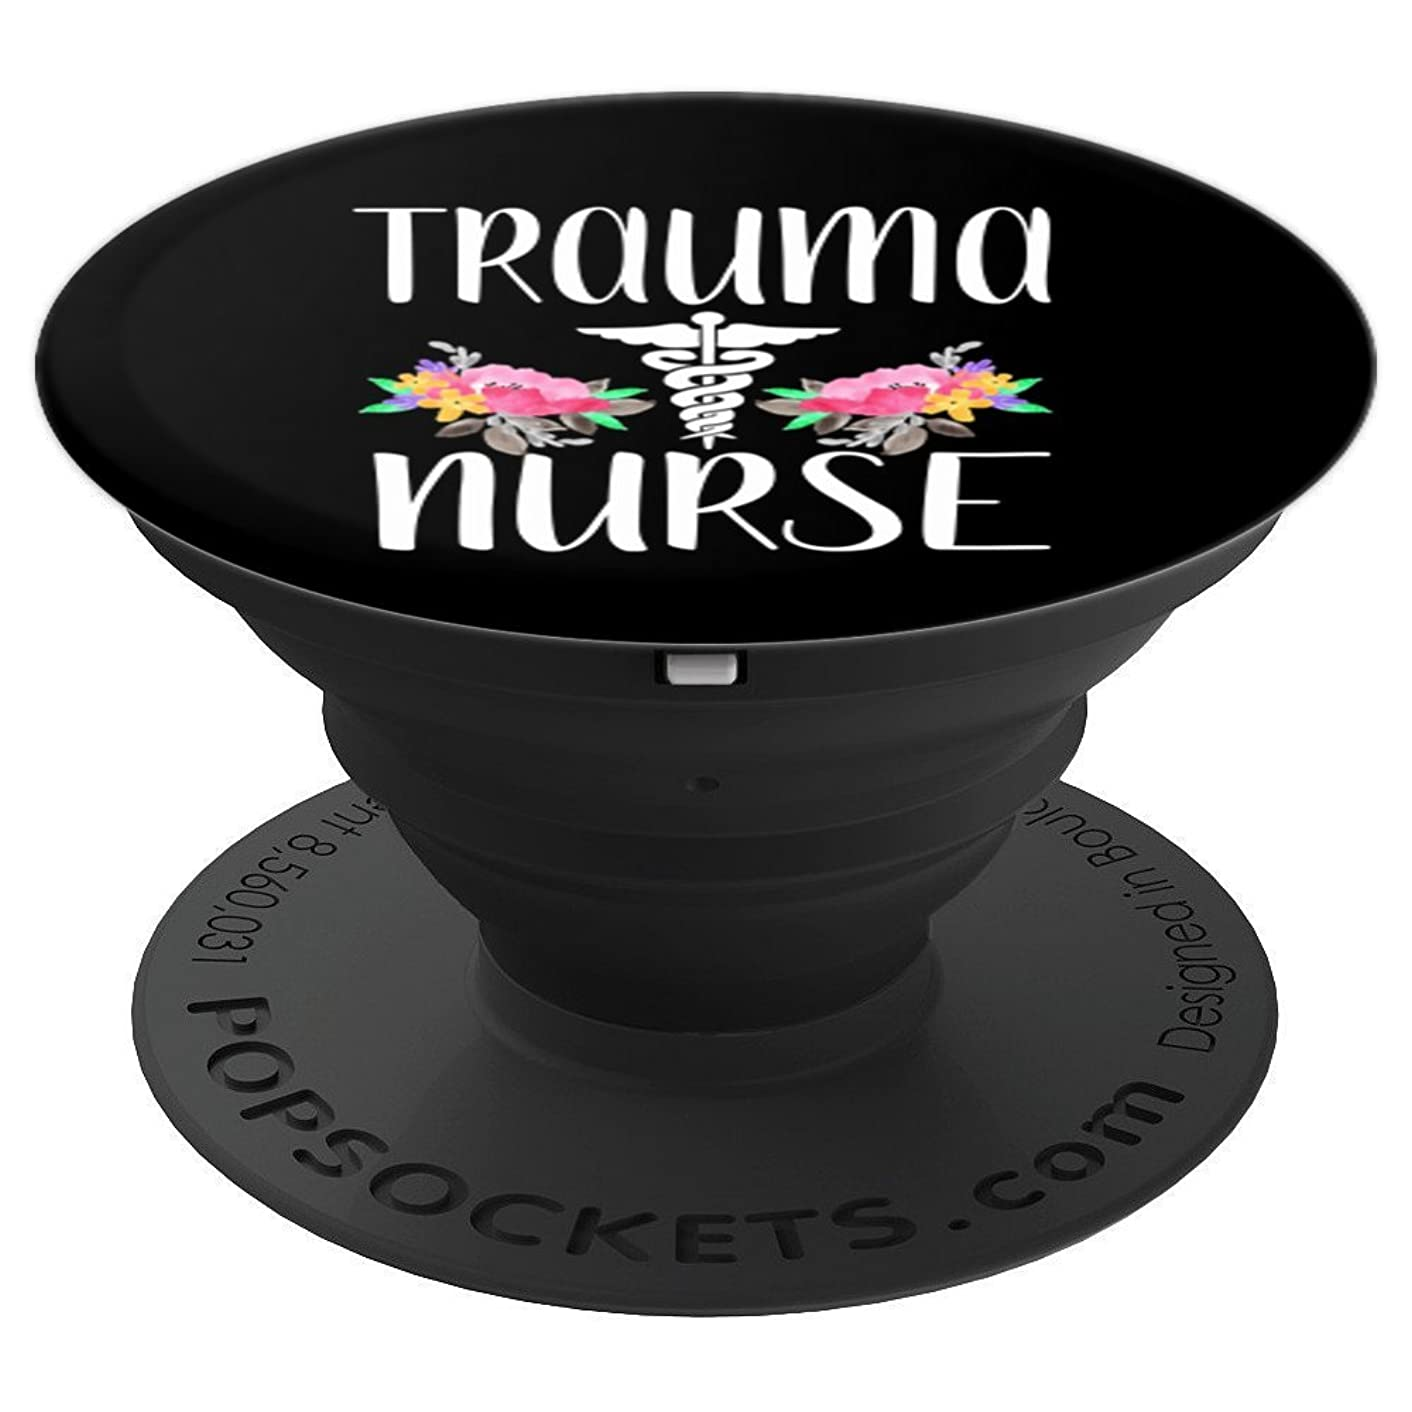 Trauma nurse phone gift - PopSockets Grip and Stand for Phones and Tablets